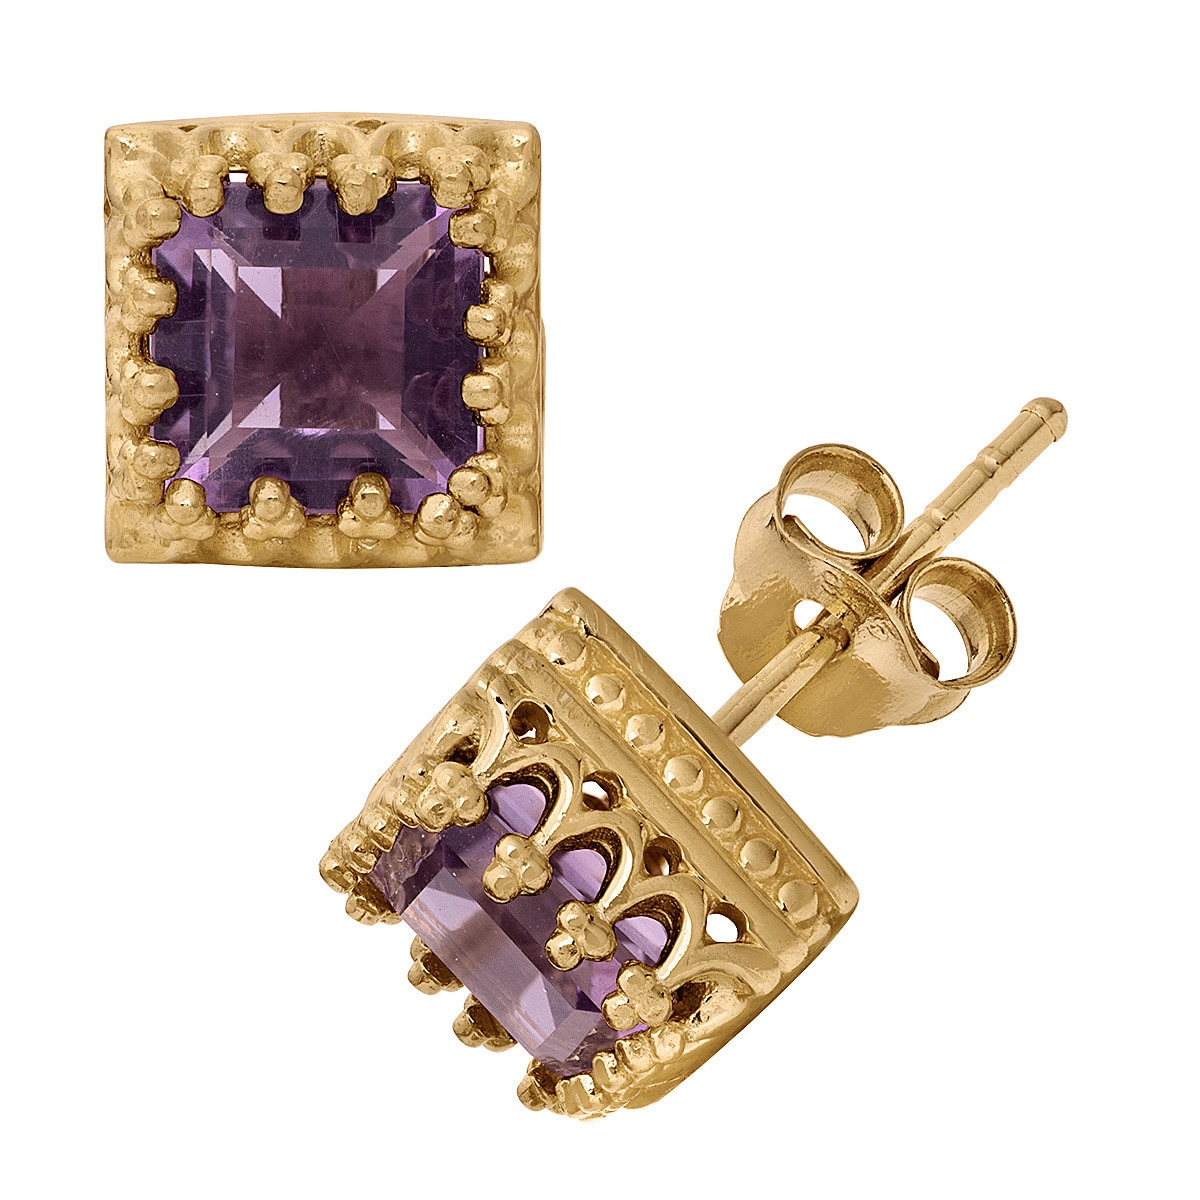 Gioelli Designs Gioelli Tiara Collection Goldplated Silver 6mm Square Gemstone Crown Earrings